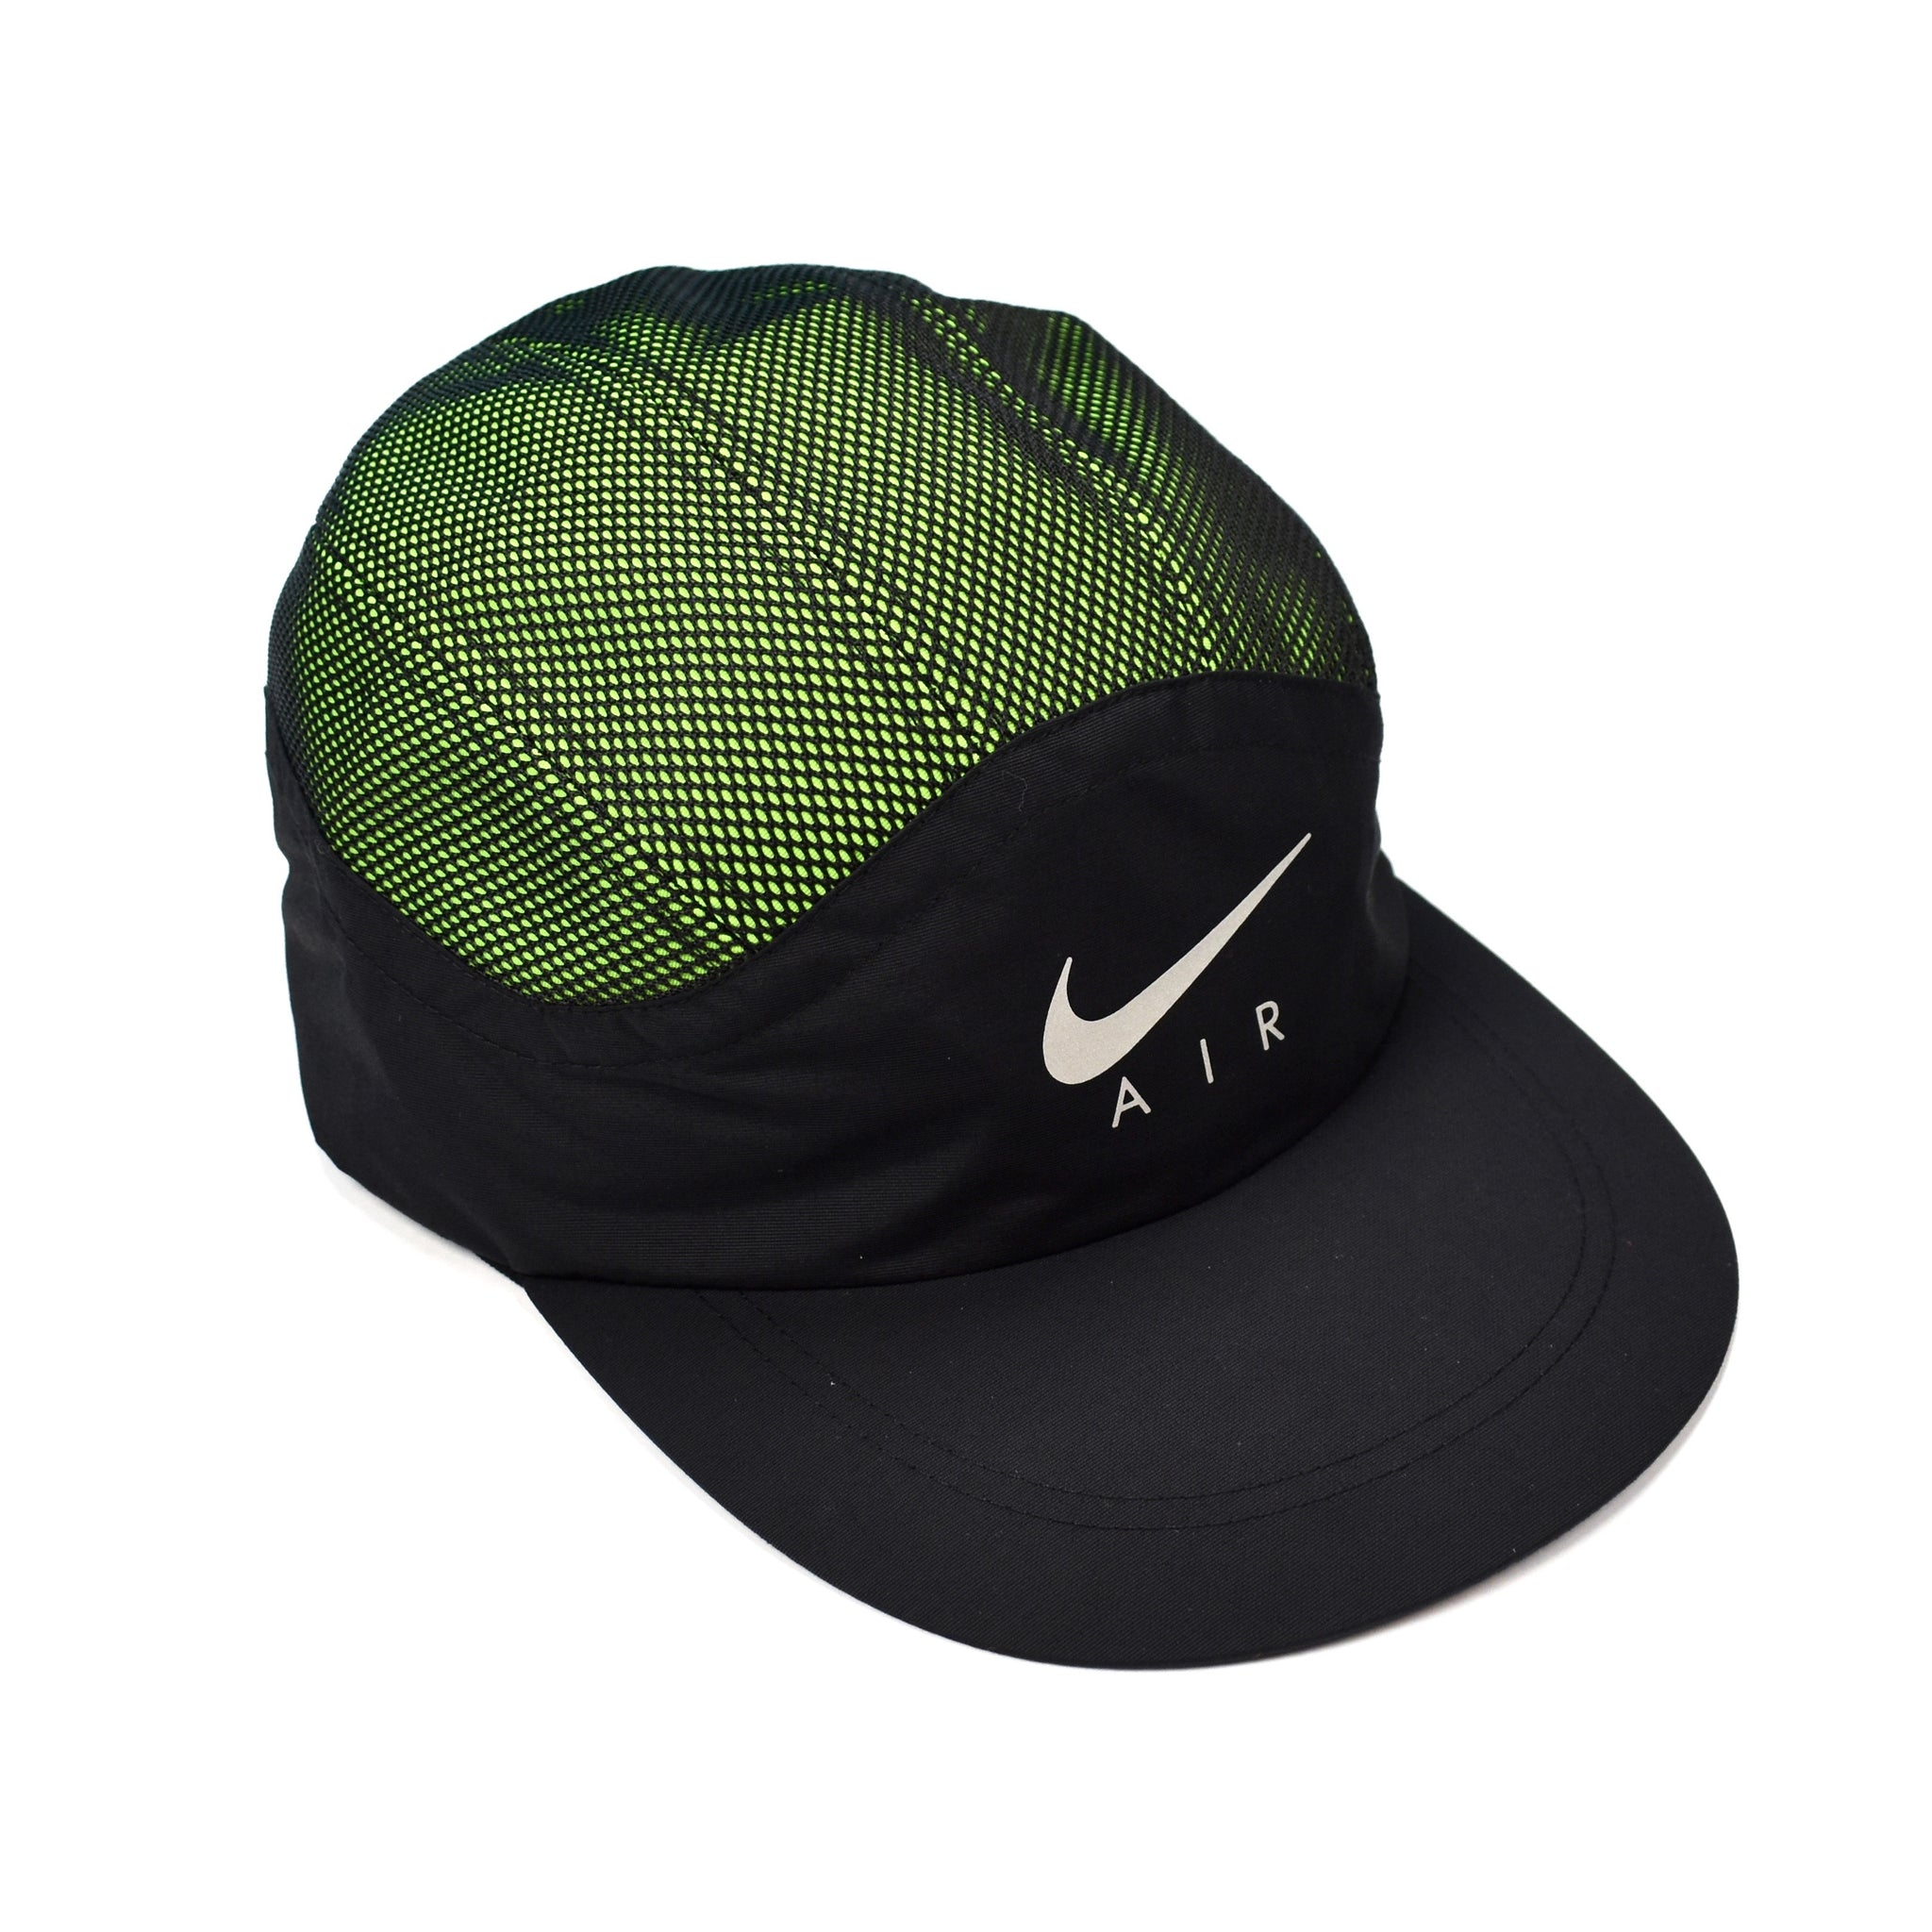 sport mick black fanwear products scuderia cap for ferrari by simmons at baseball only buy puma